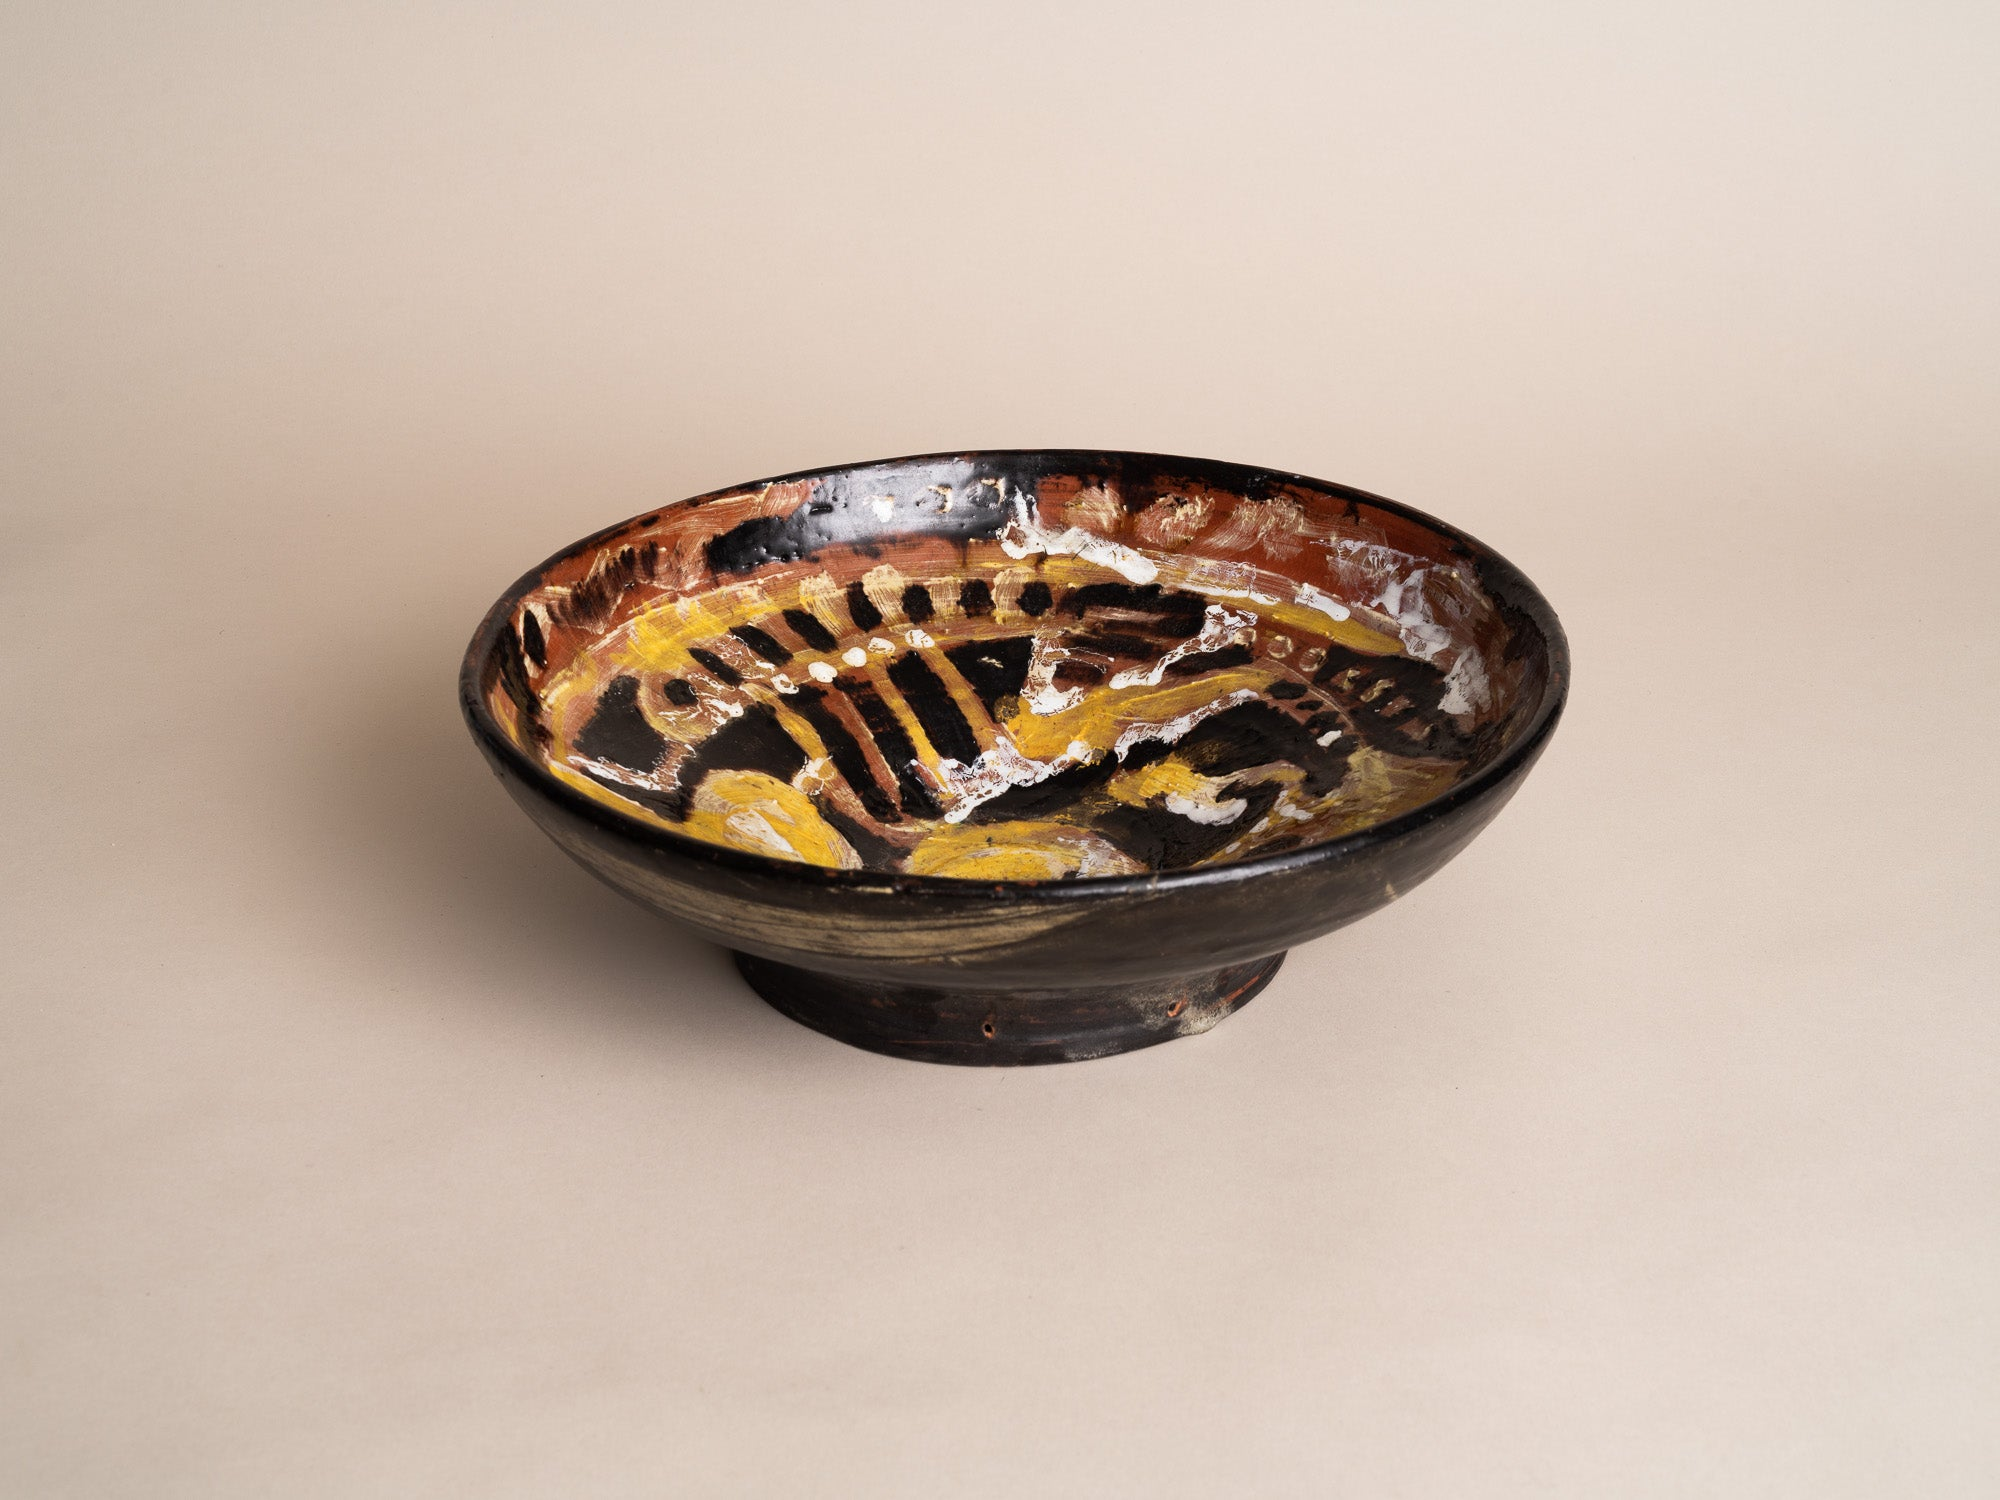 Rare coupe murale par Hertha Hillfon, Suède (1964)..Early ceramic Wall hanging bowl by Hertha Hillfon, Sweden (1964)